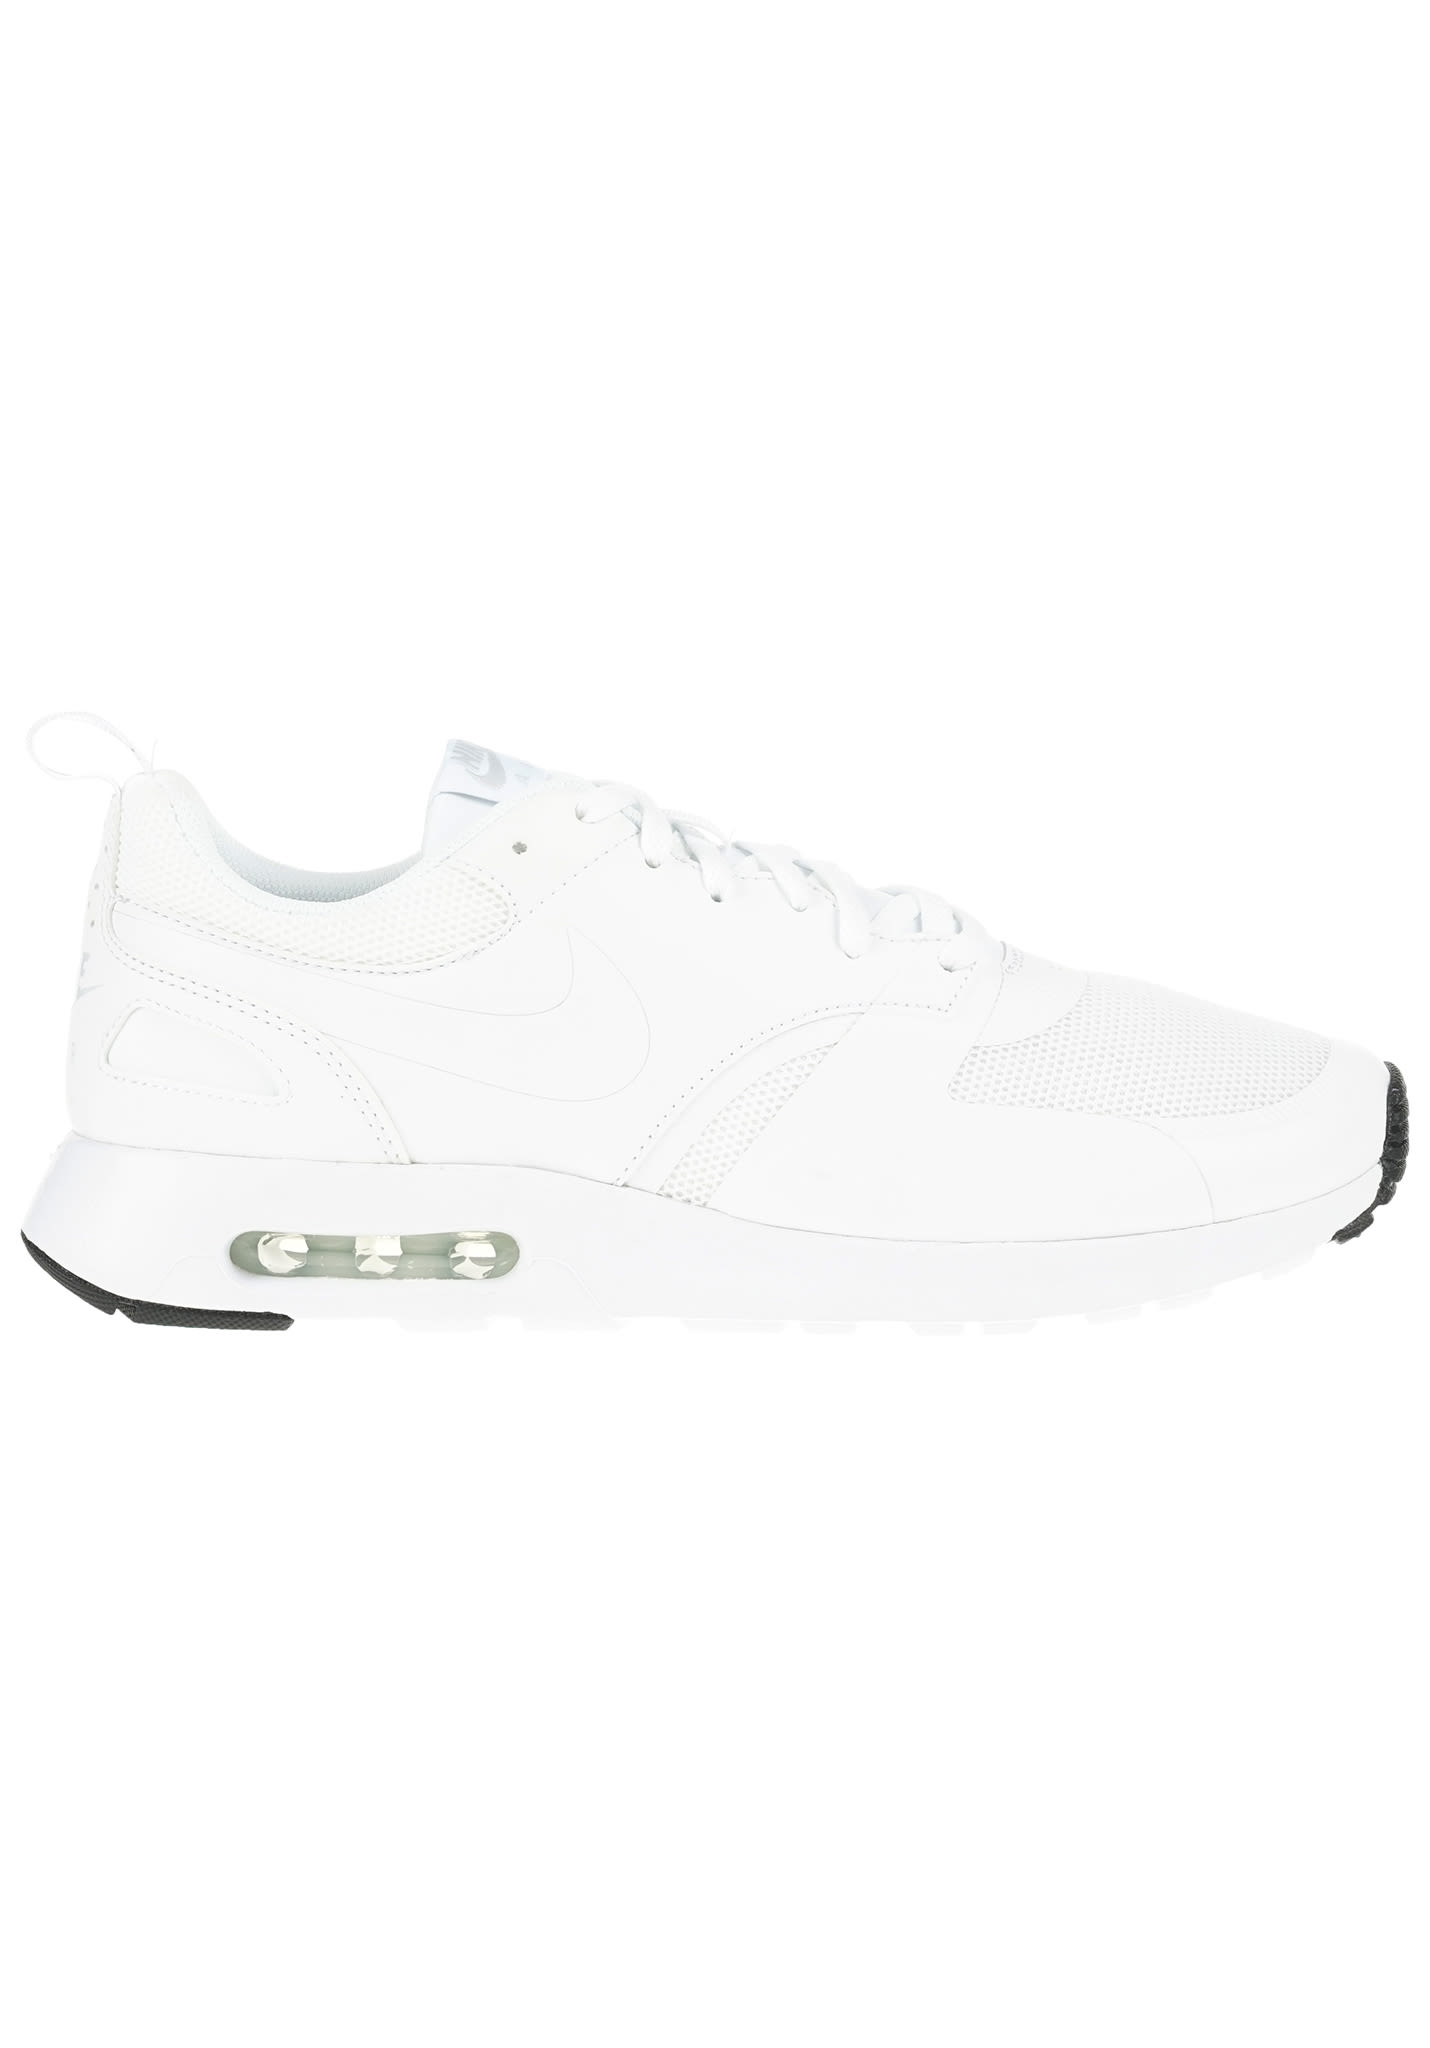 online store 80af7 a37ad NIKE SPORTSWEAR Air Max Vision - Sneakers for Men - White - Planet Sports